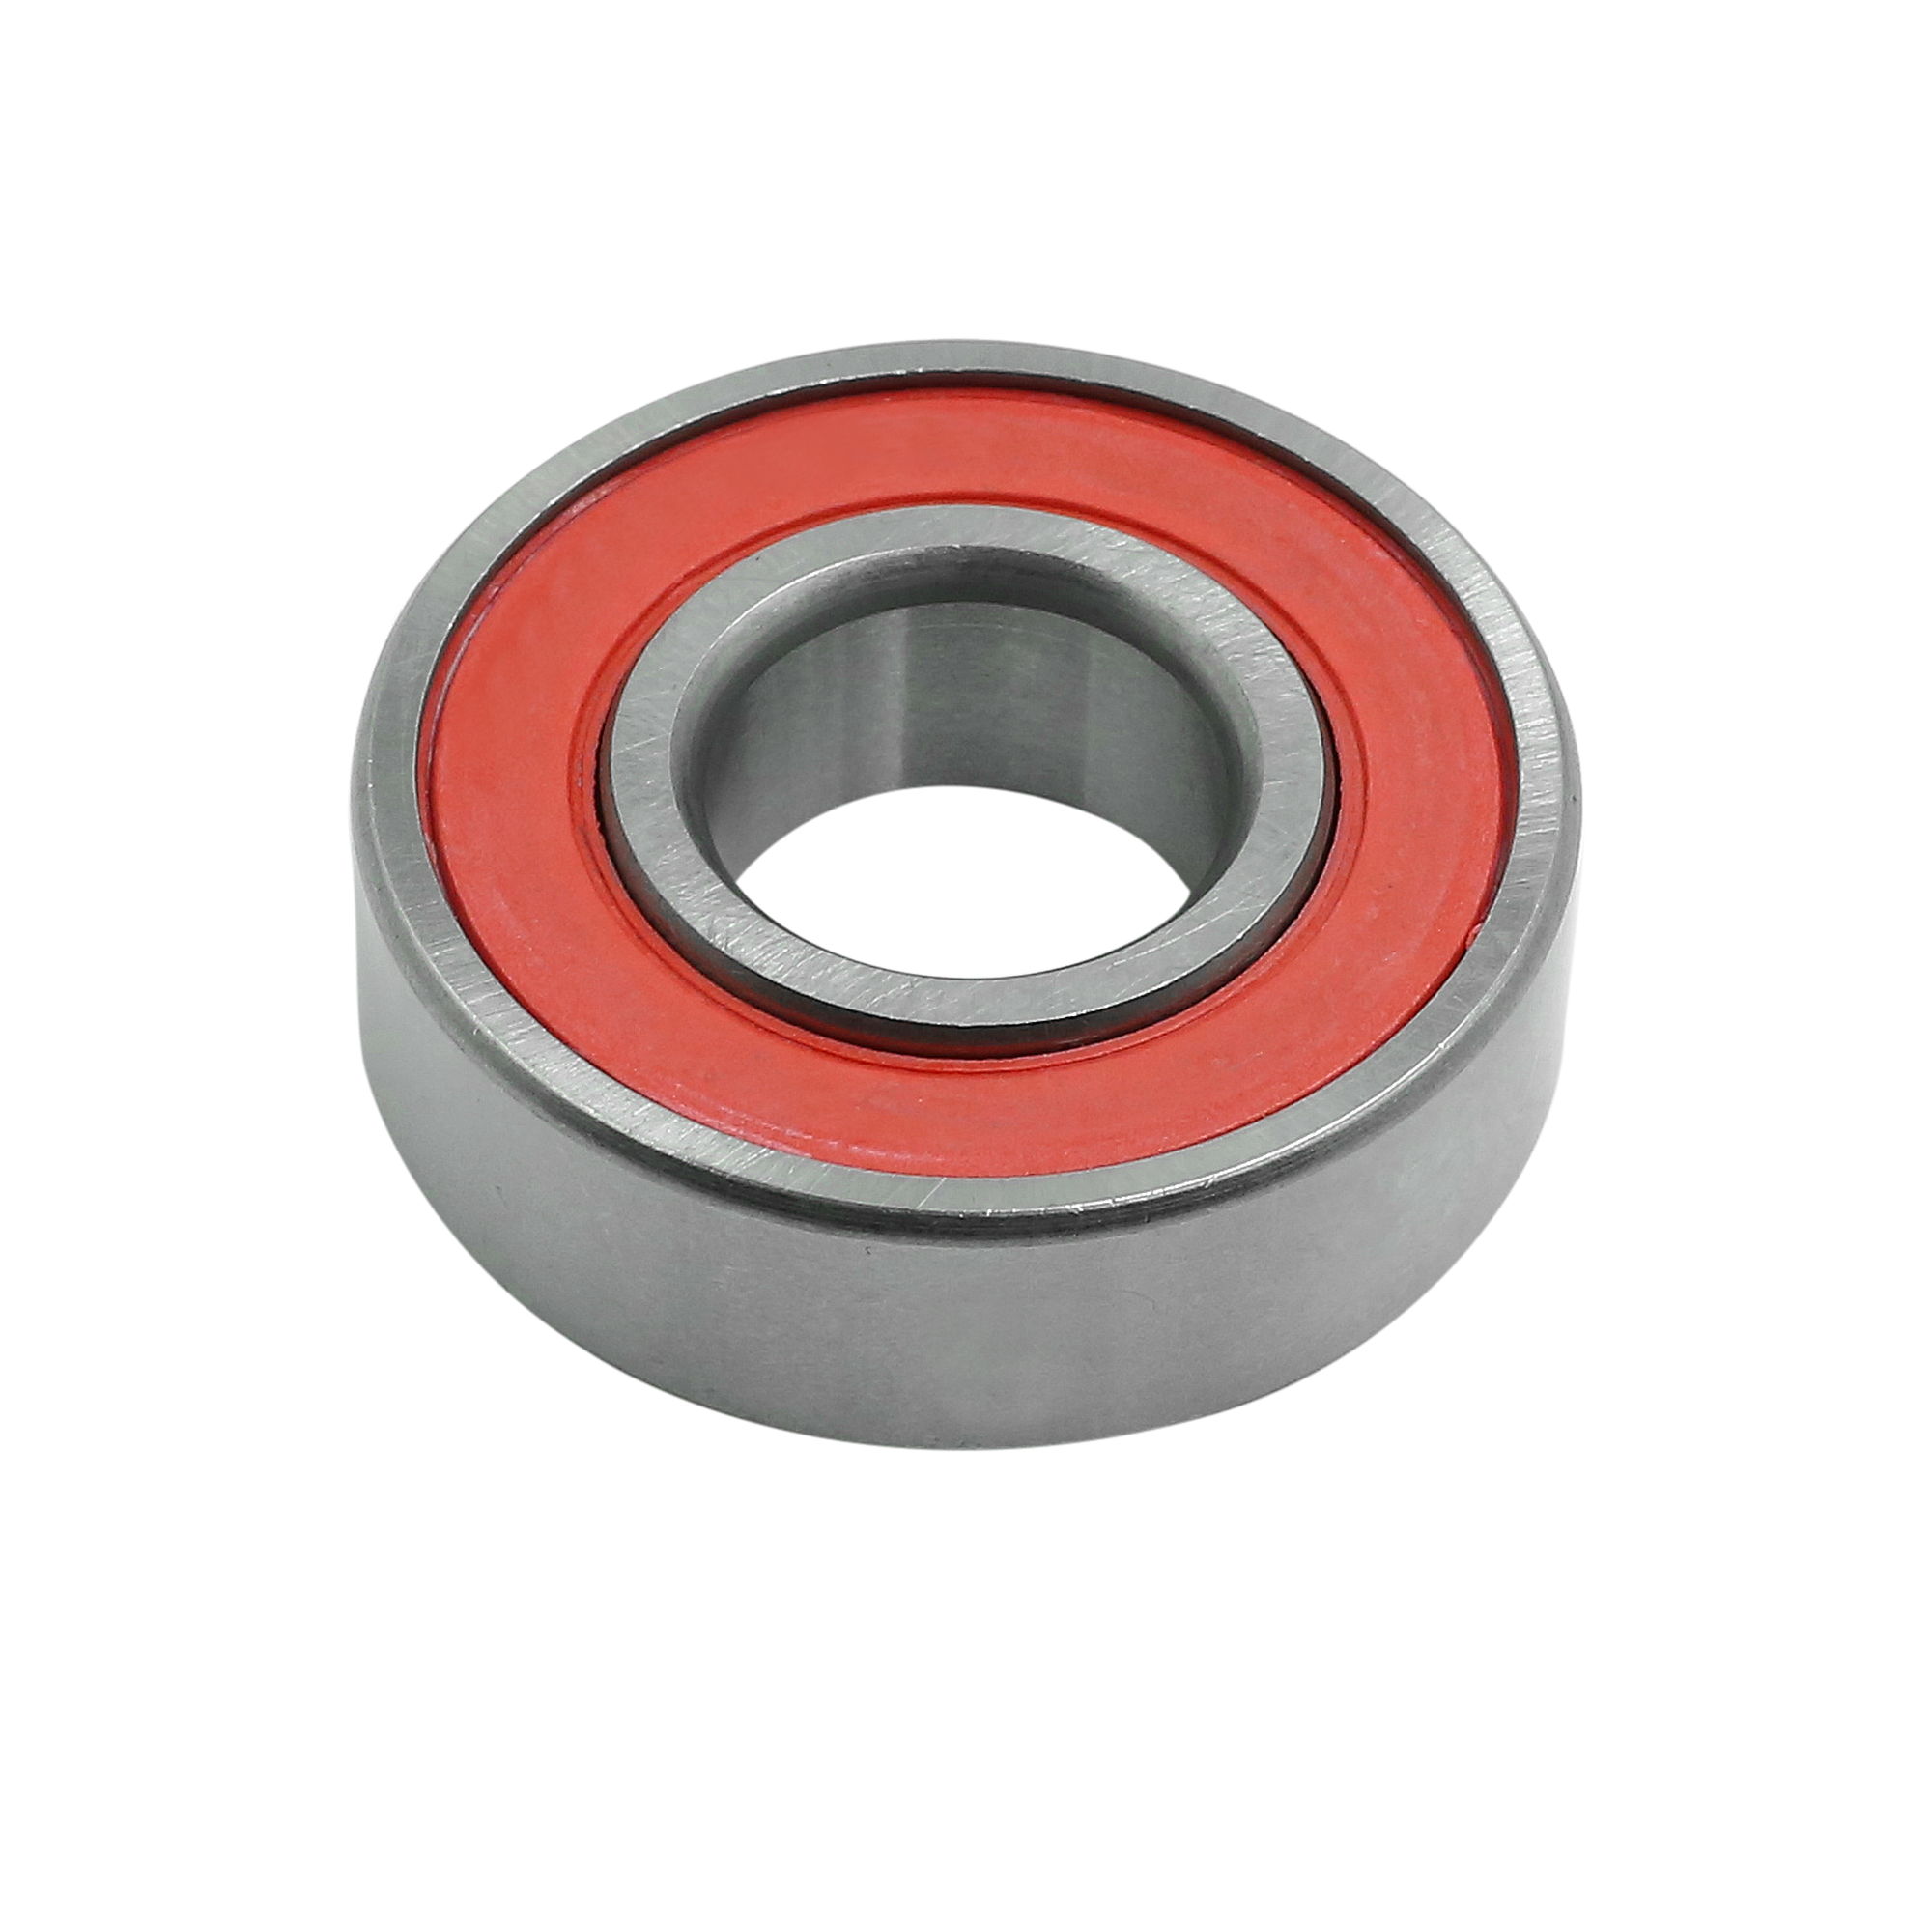 Universal 6003RS Deep Groove Rubber Sealed Shielded Ball Bearing 35 x 17 x 10mm - image 2 of 3